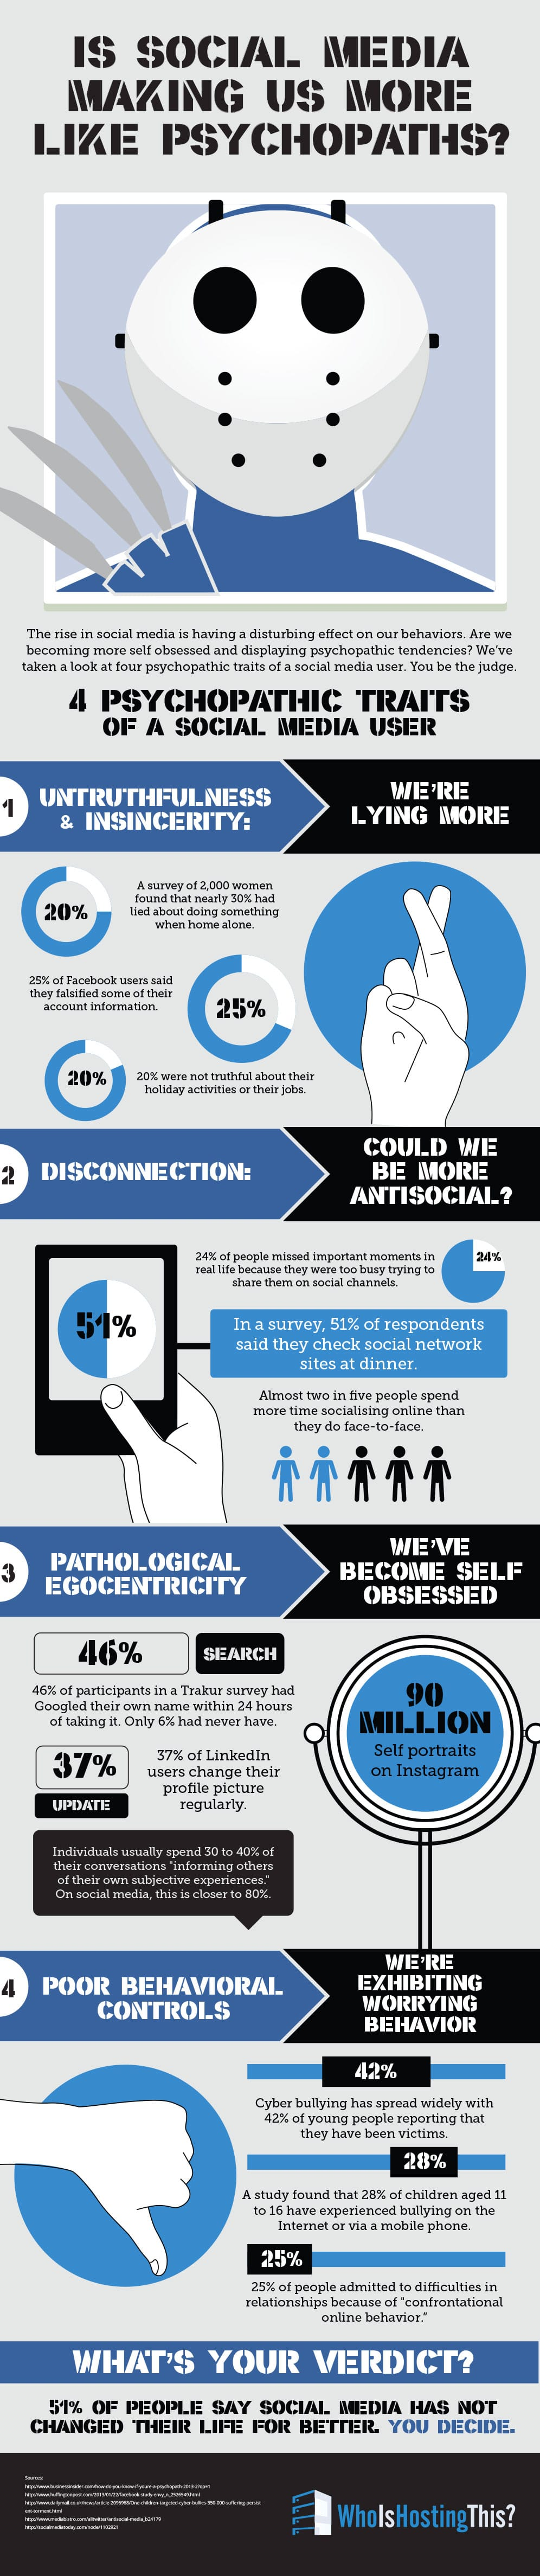 How Social Media Addicts Are Similar To Psychopaths [Infographic]